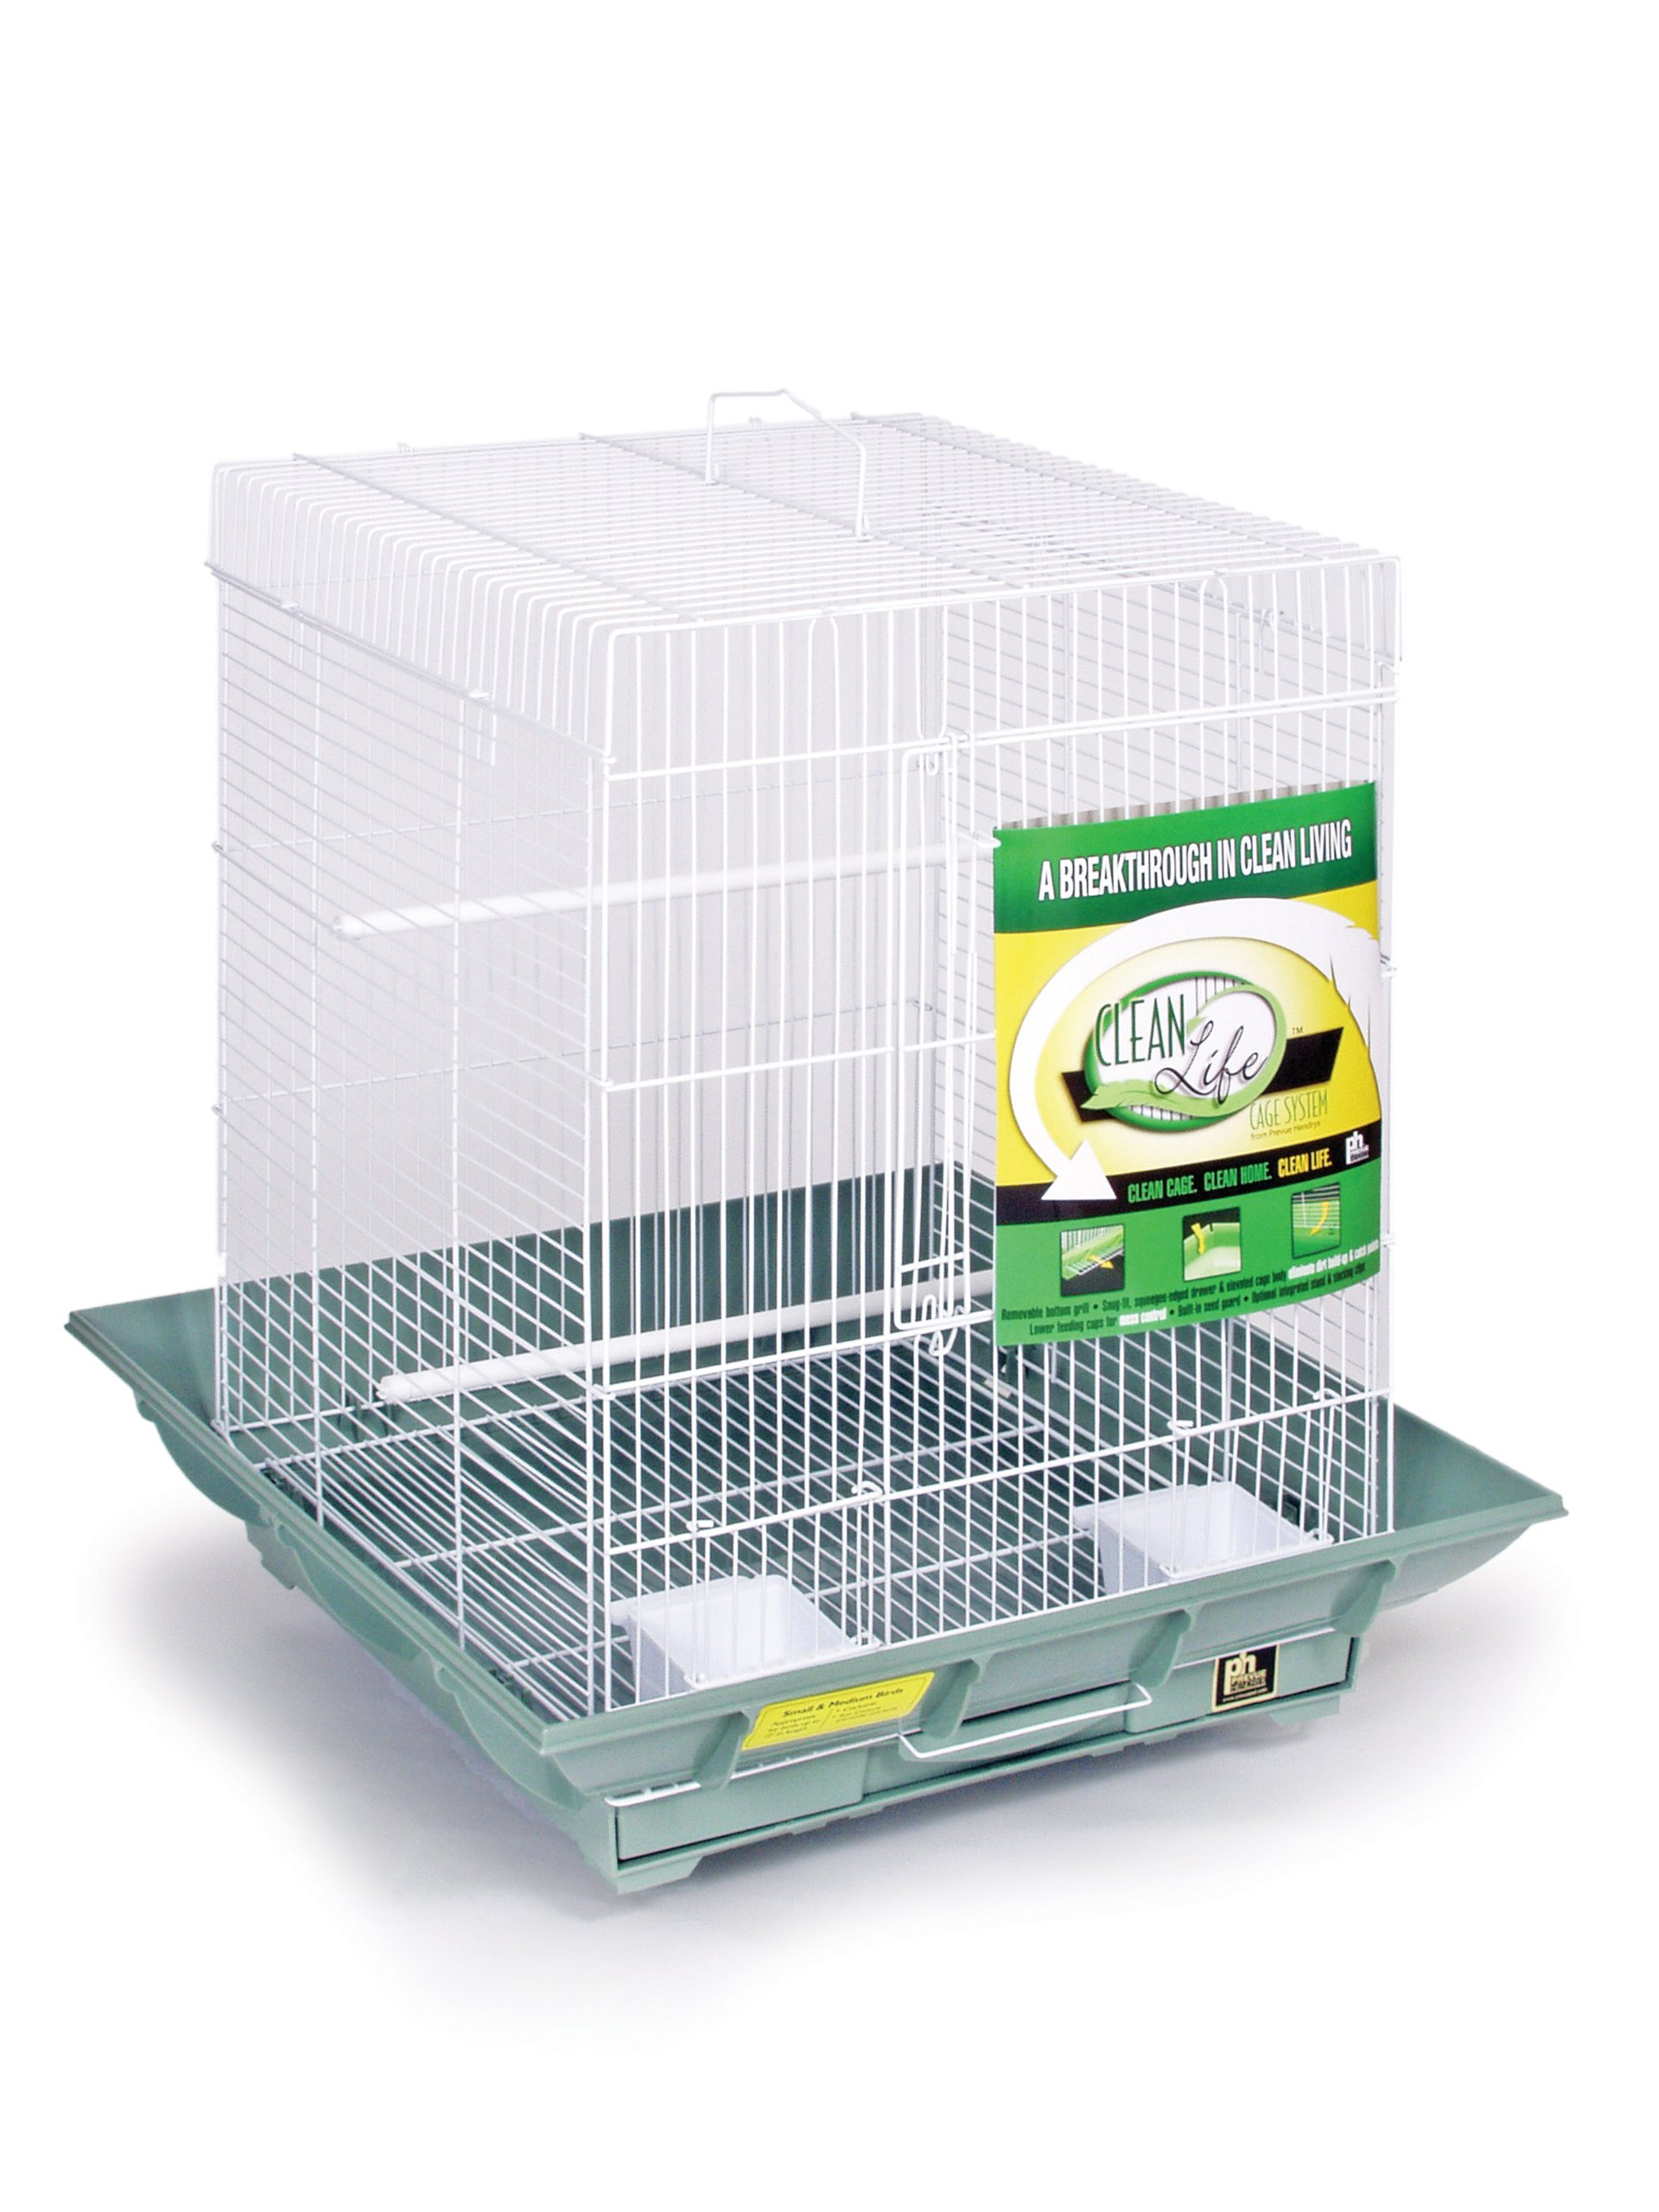 Prevue Hendryx SP850G/W Clean Life Cockatiel Cage, Green and White by Prevue Hendryx